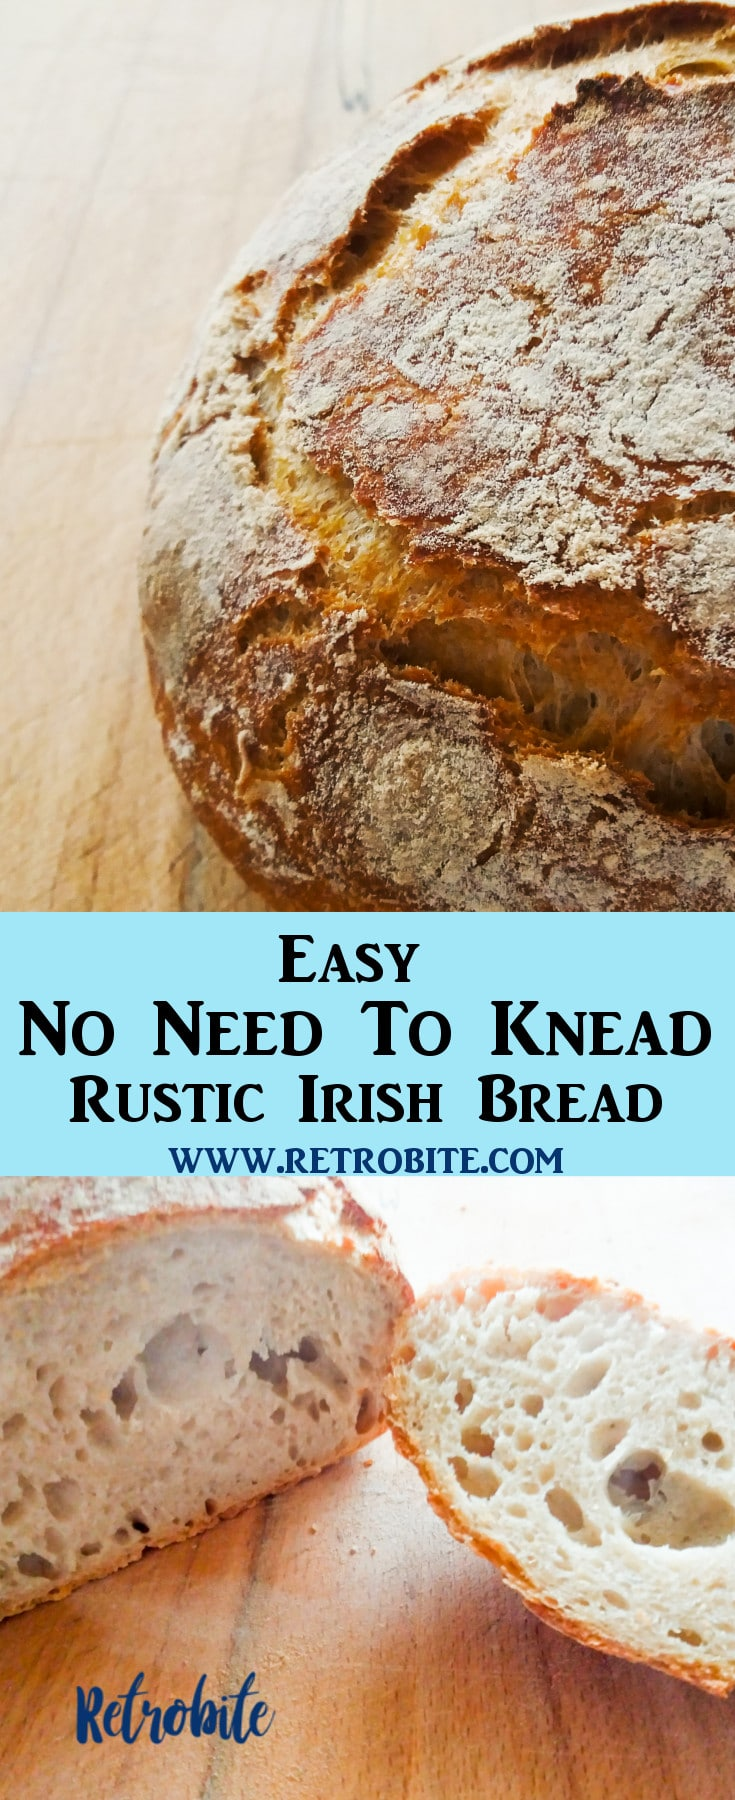 No Need To Knead Irish Rustic Bread Recipe